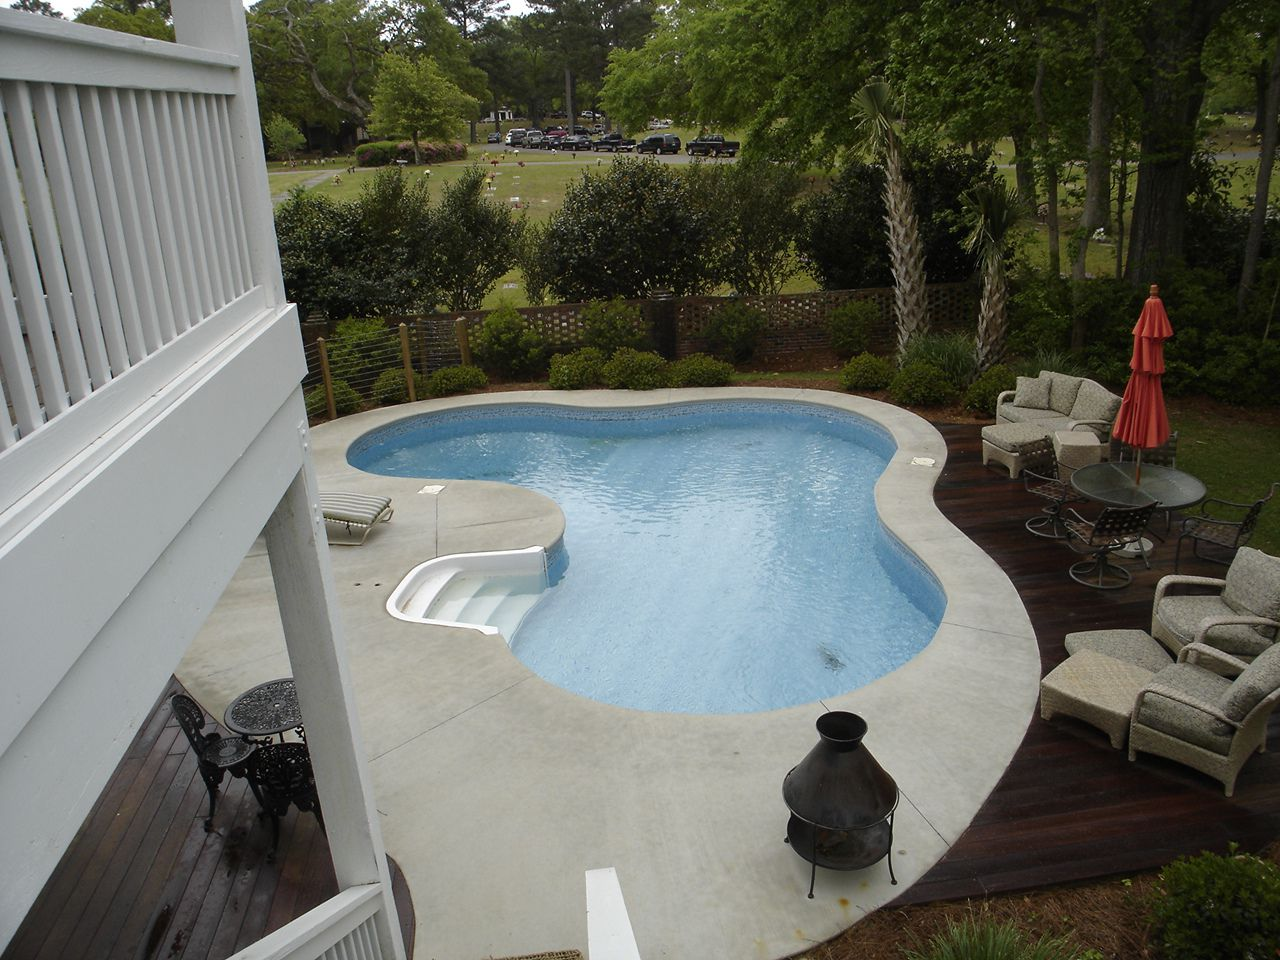 Jfm pools in wilmington nc swimming pool contractors for Swimming pool dealers